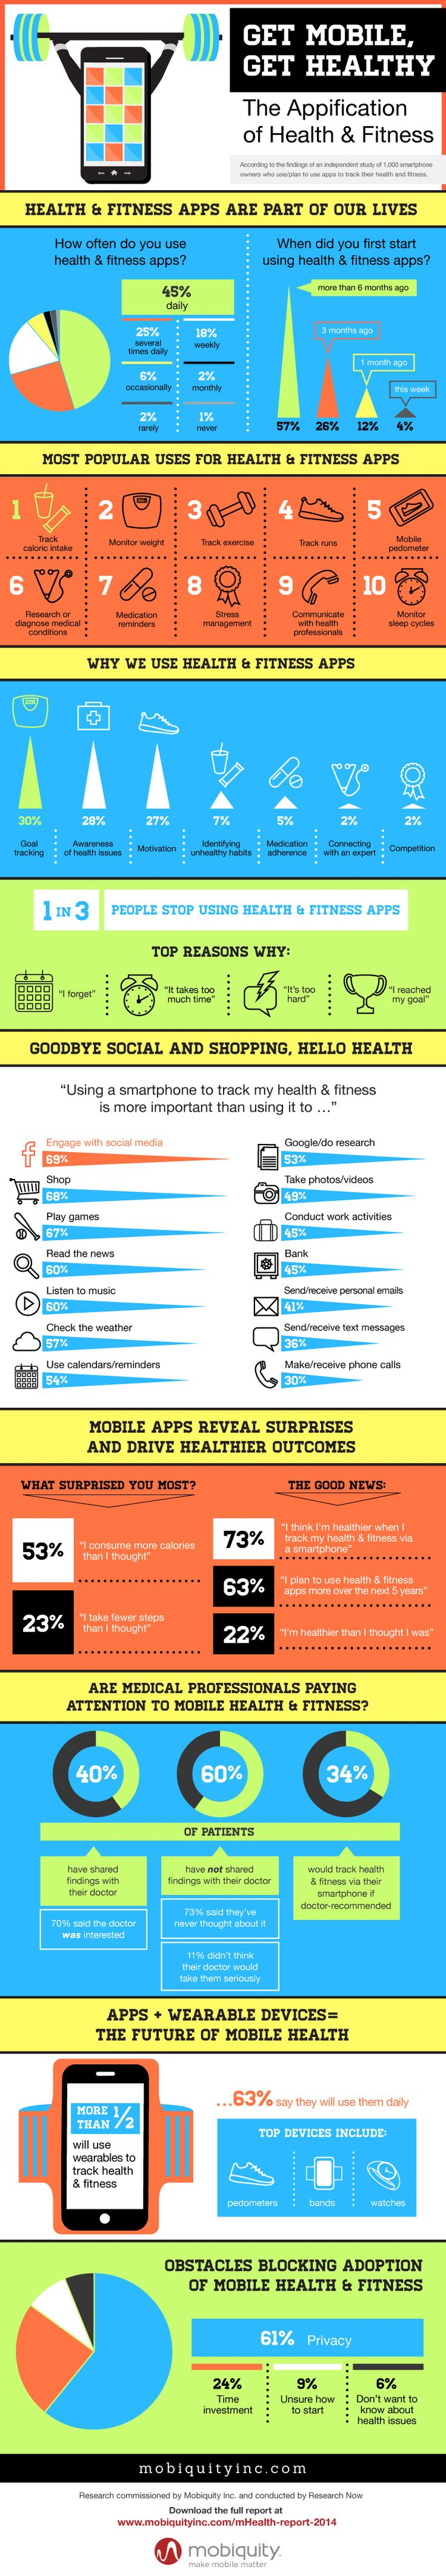 #mhealth #trends #mobile #apps